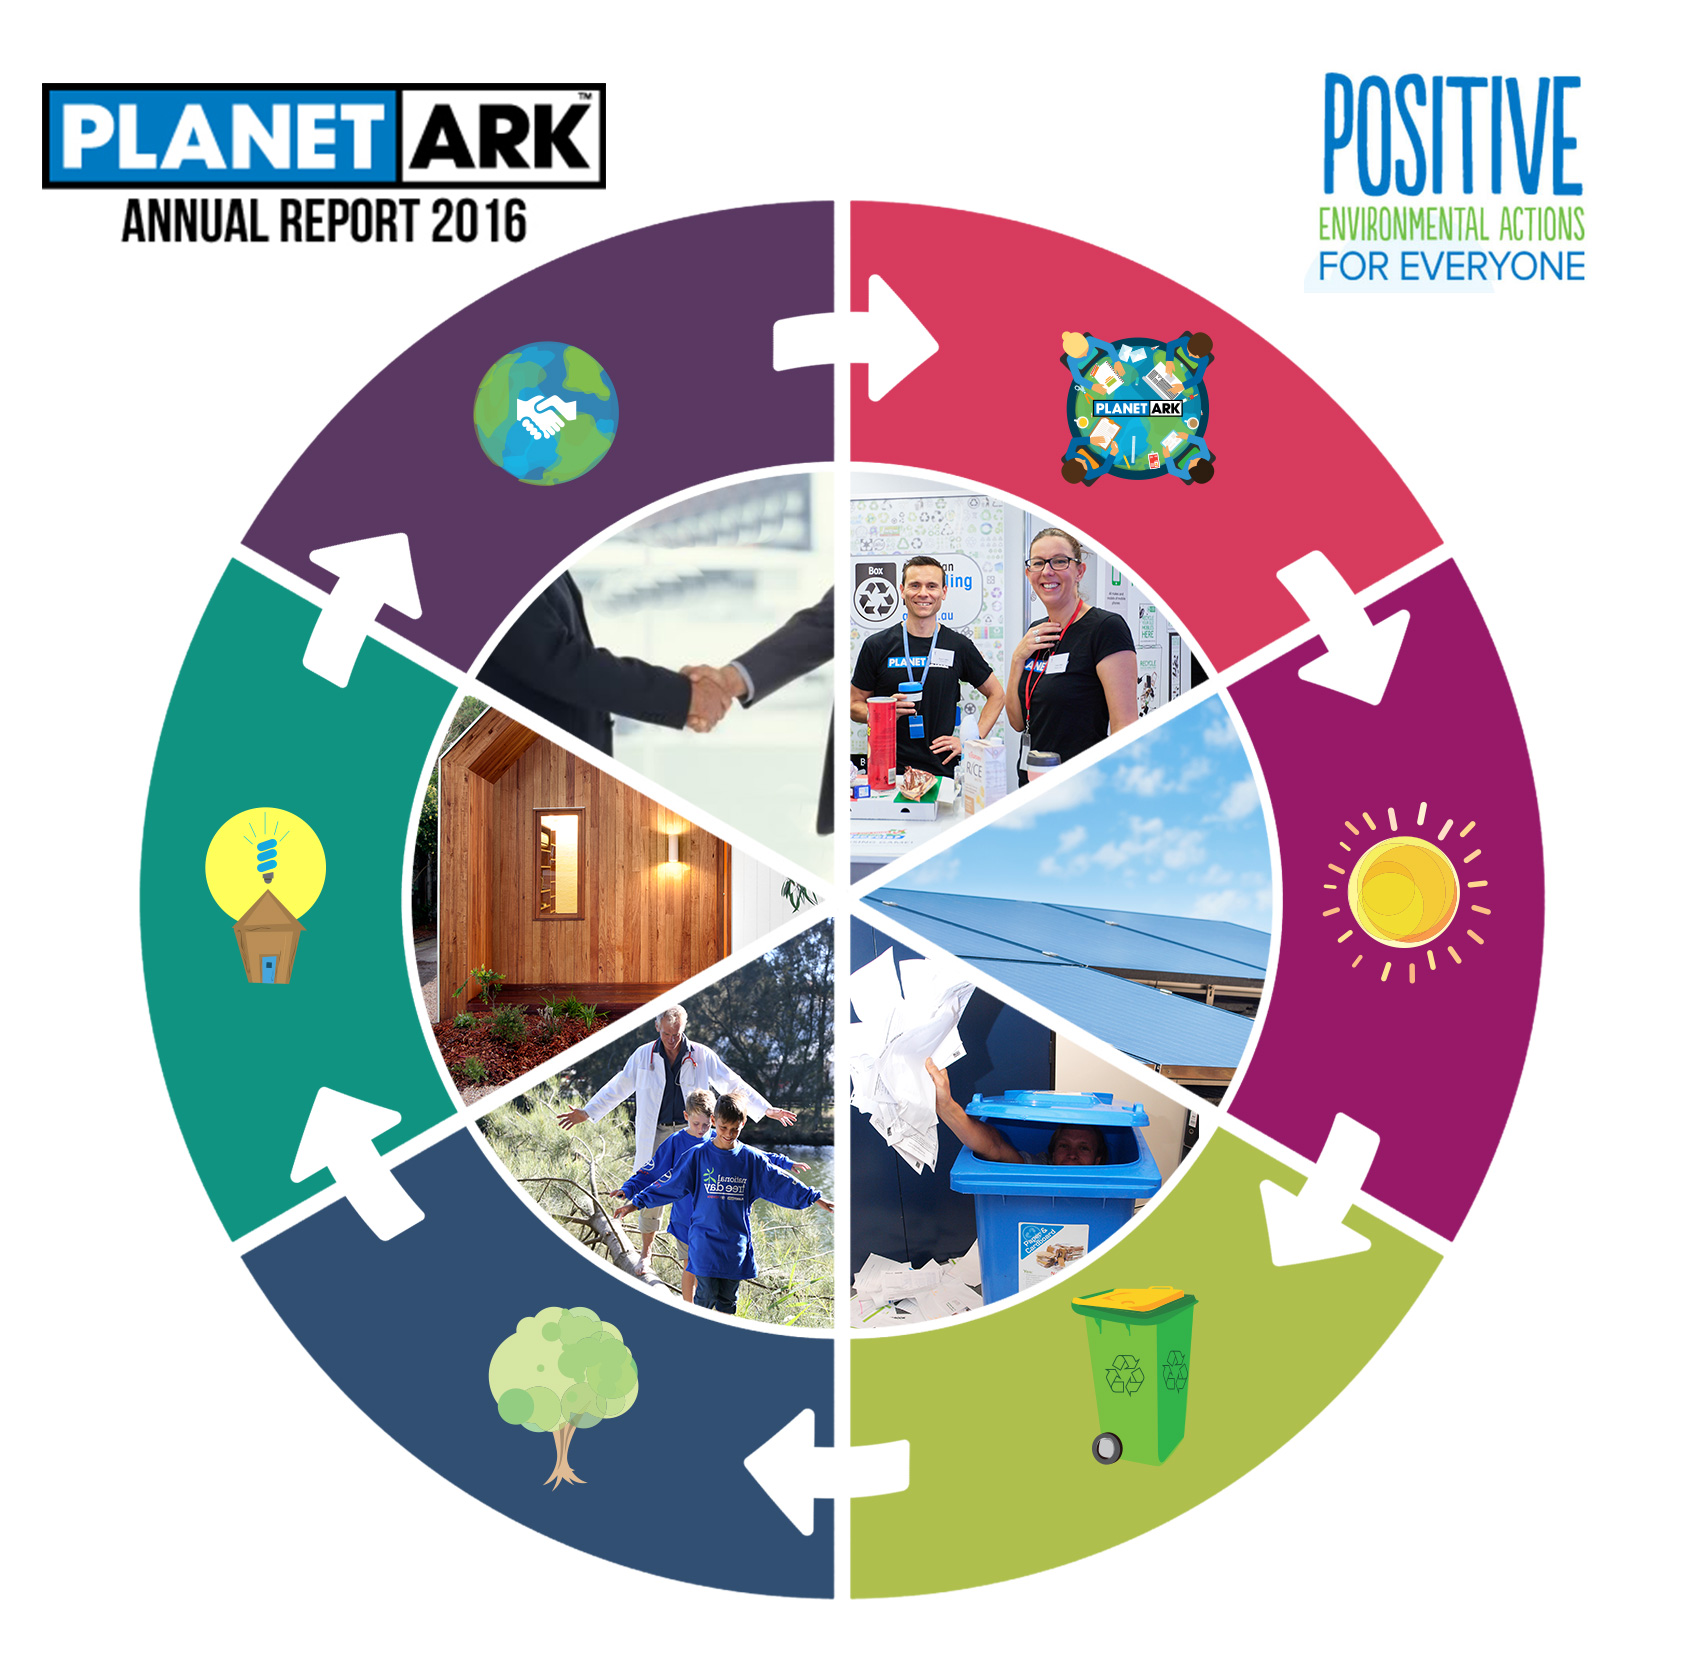 Planet Ark Annual Report 2016 Illustration Logo